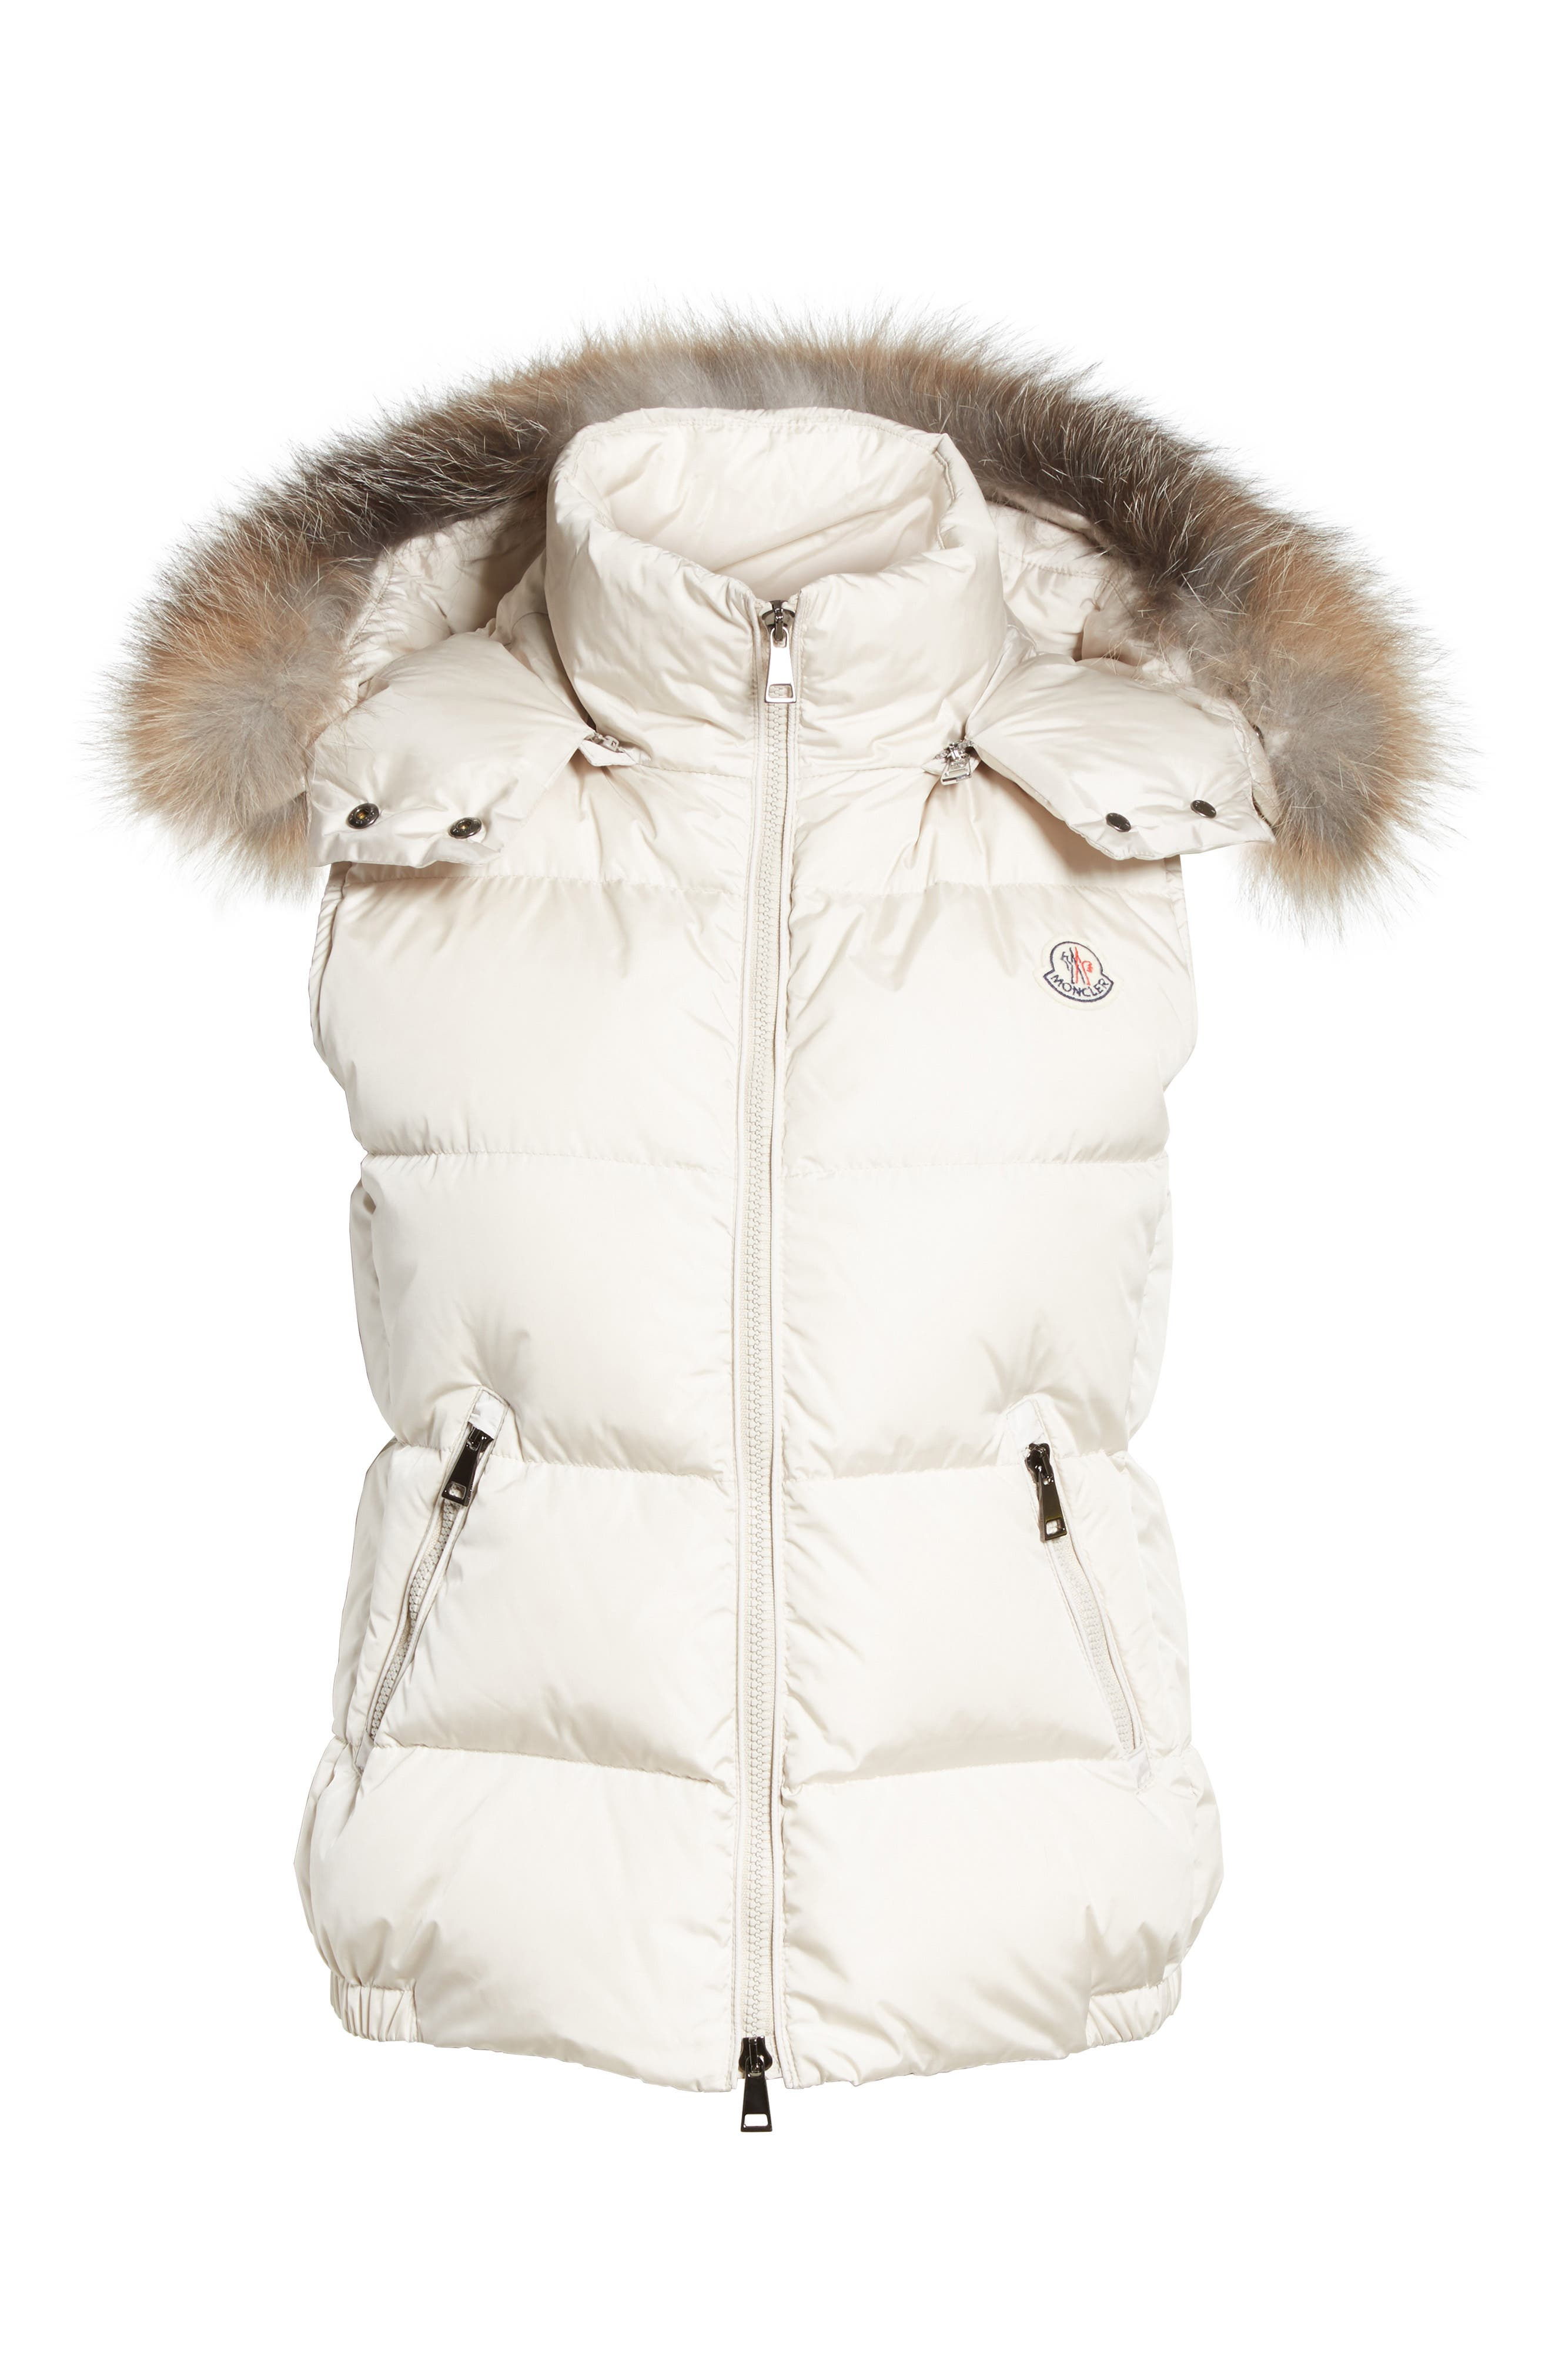 Gallinule Quilted Down Vest with Detachable Genuine Fox Fur Trim Hood,                             Alternate thumbnail 6, color,                             CHAMPAGNE